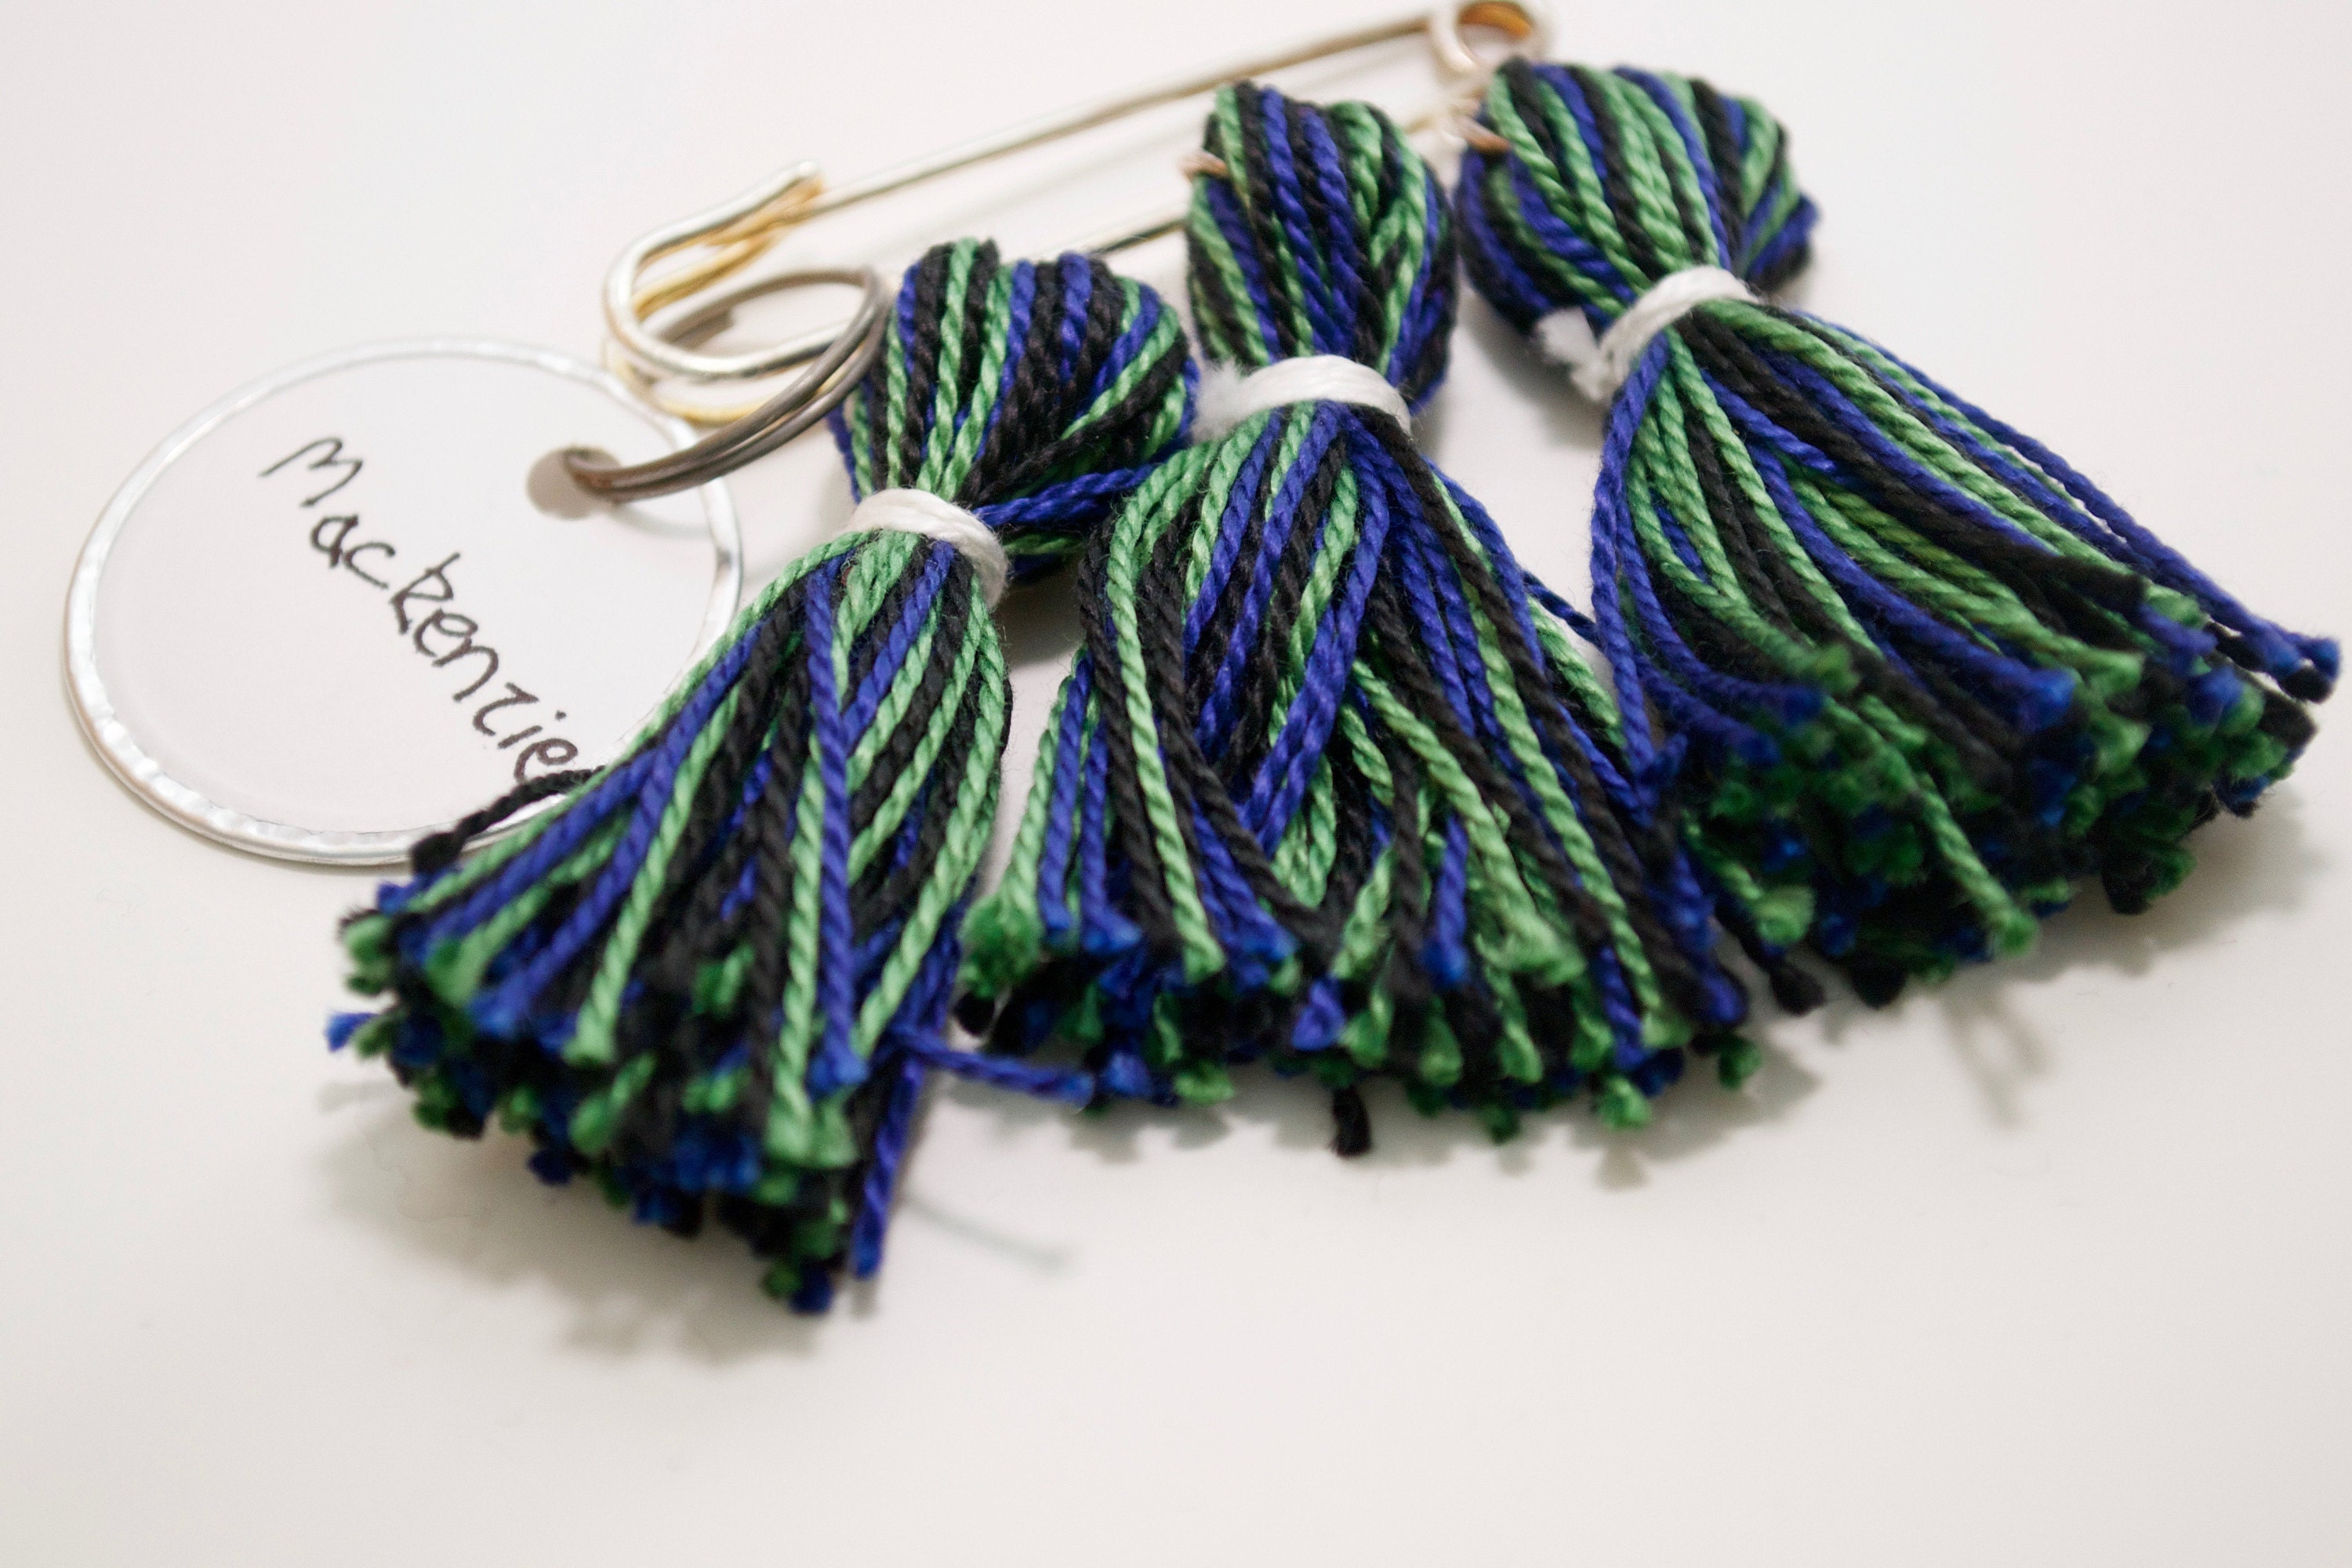 Mackenzie tartan tassel kilt pin in blue, black, and green, with white wrap